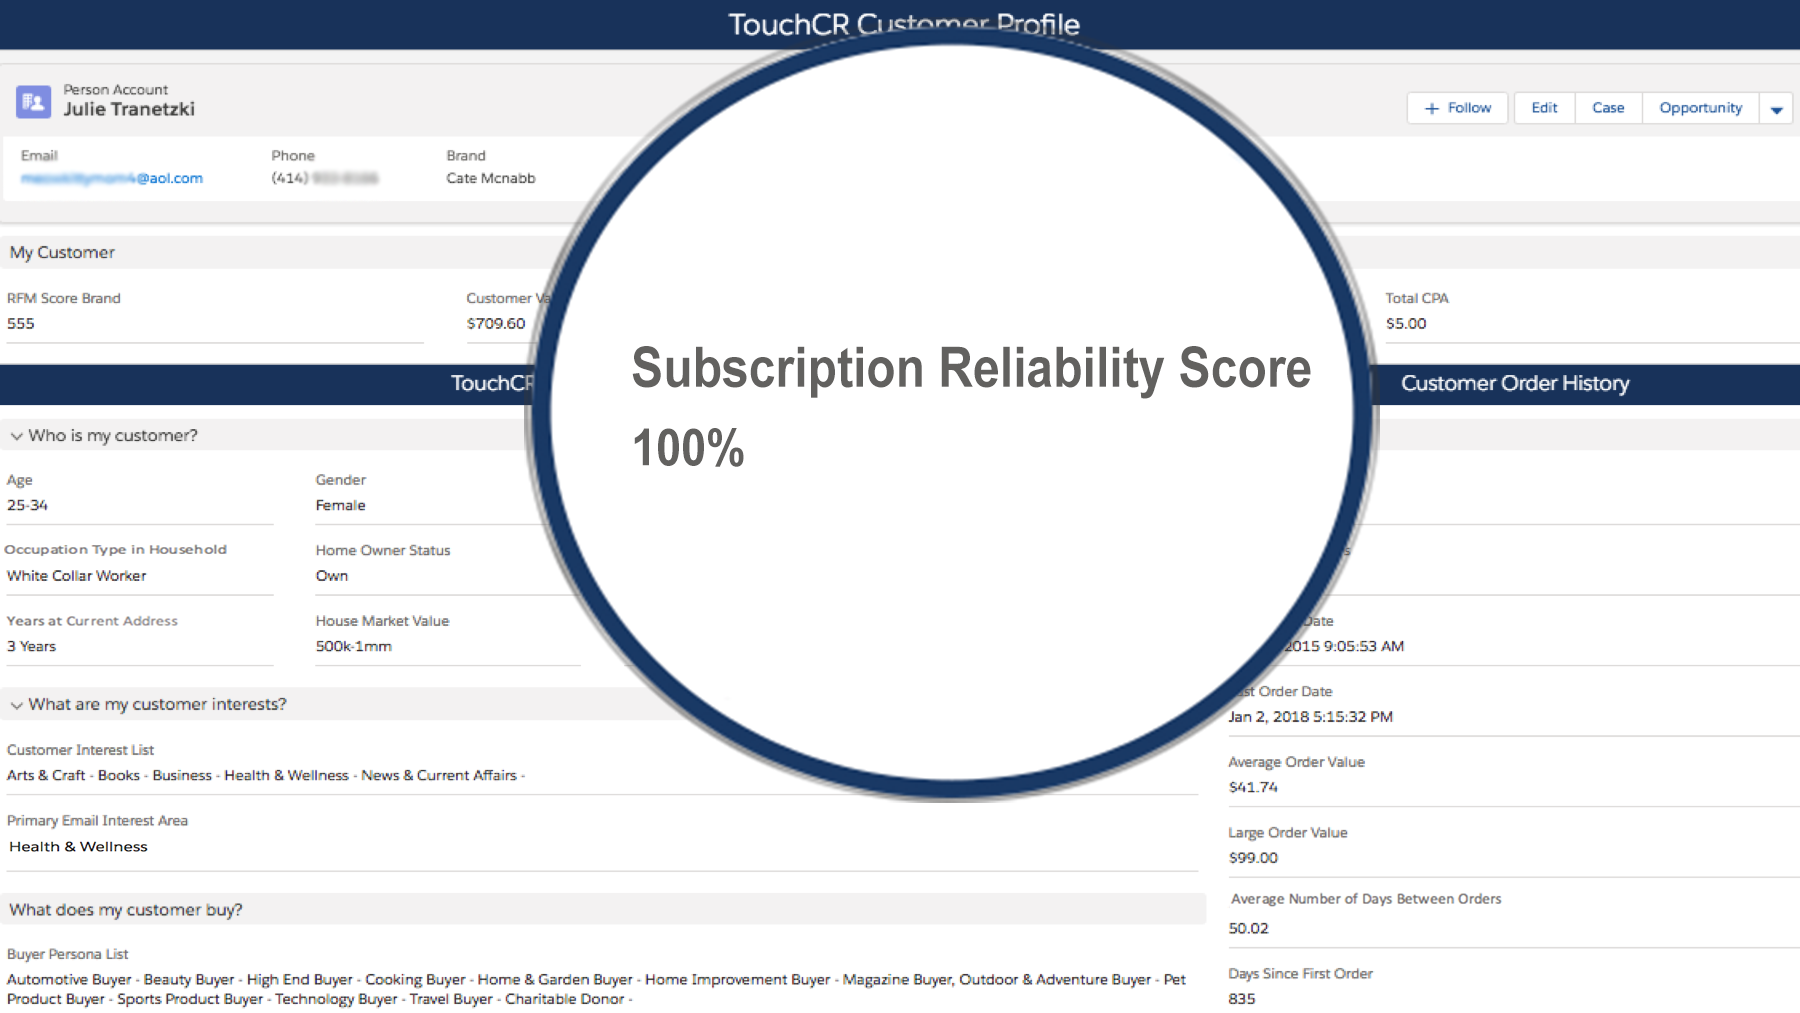 Customer Reliability Score Tracked Over Time